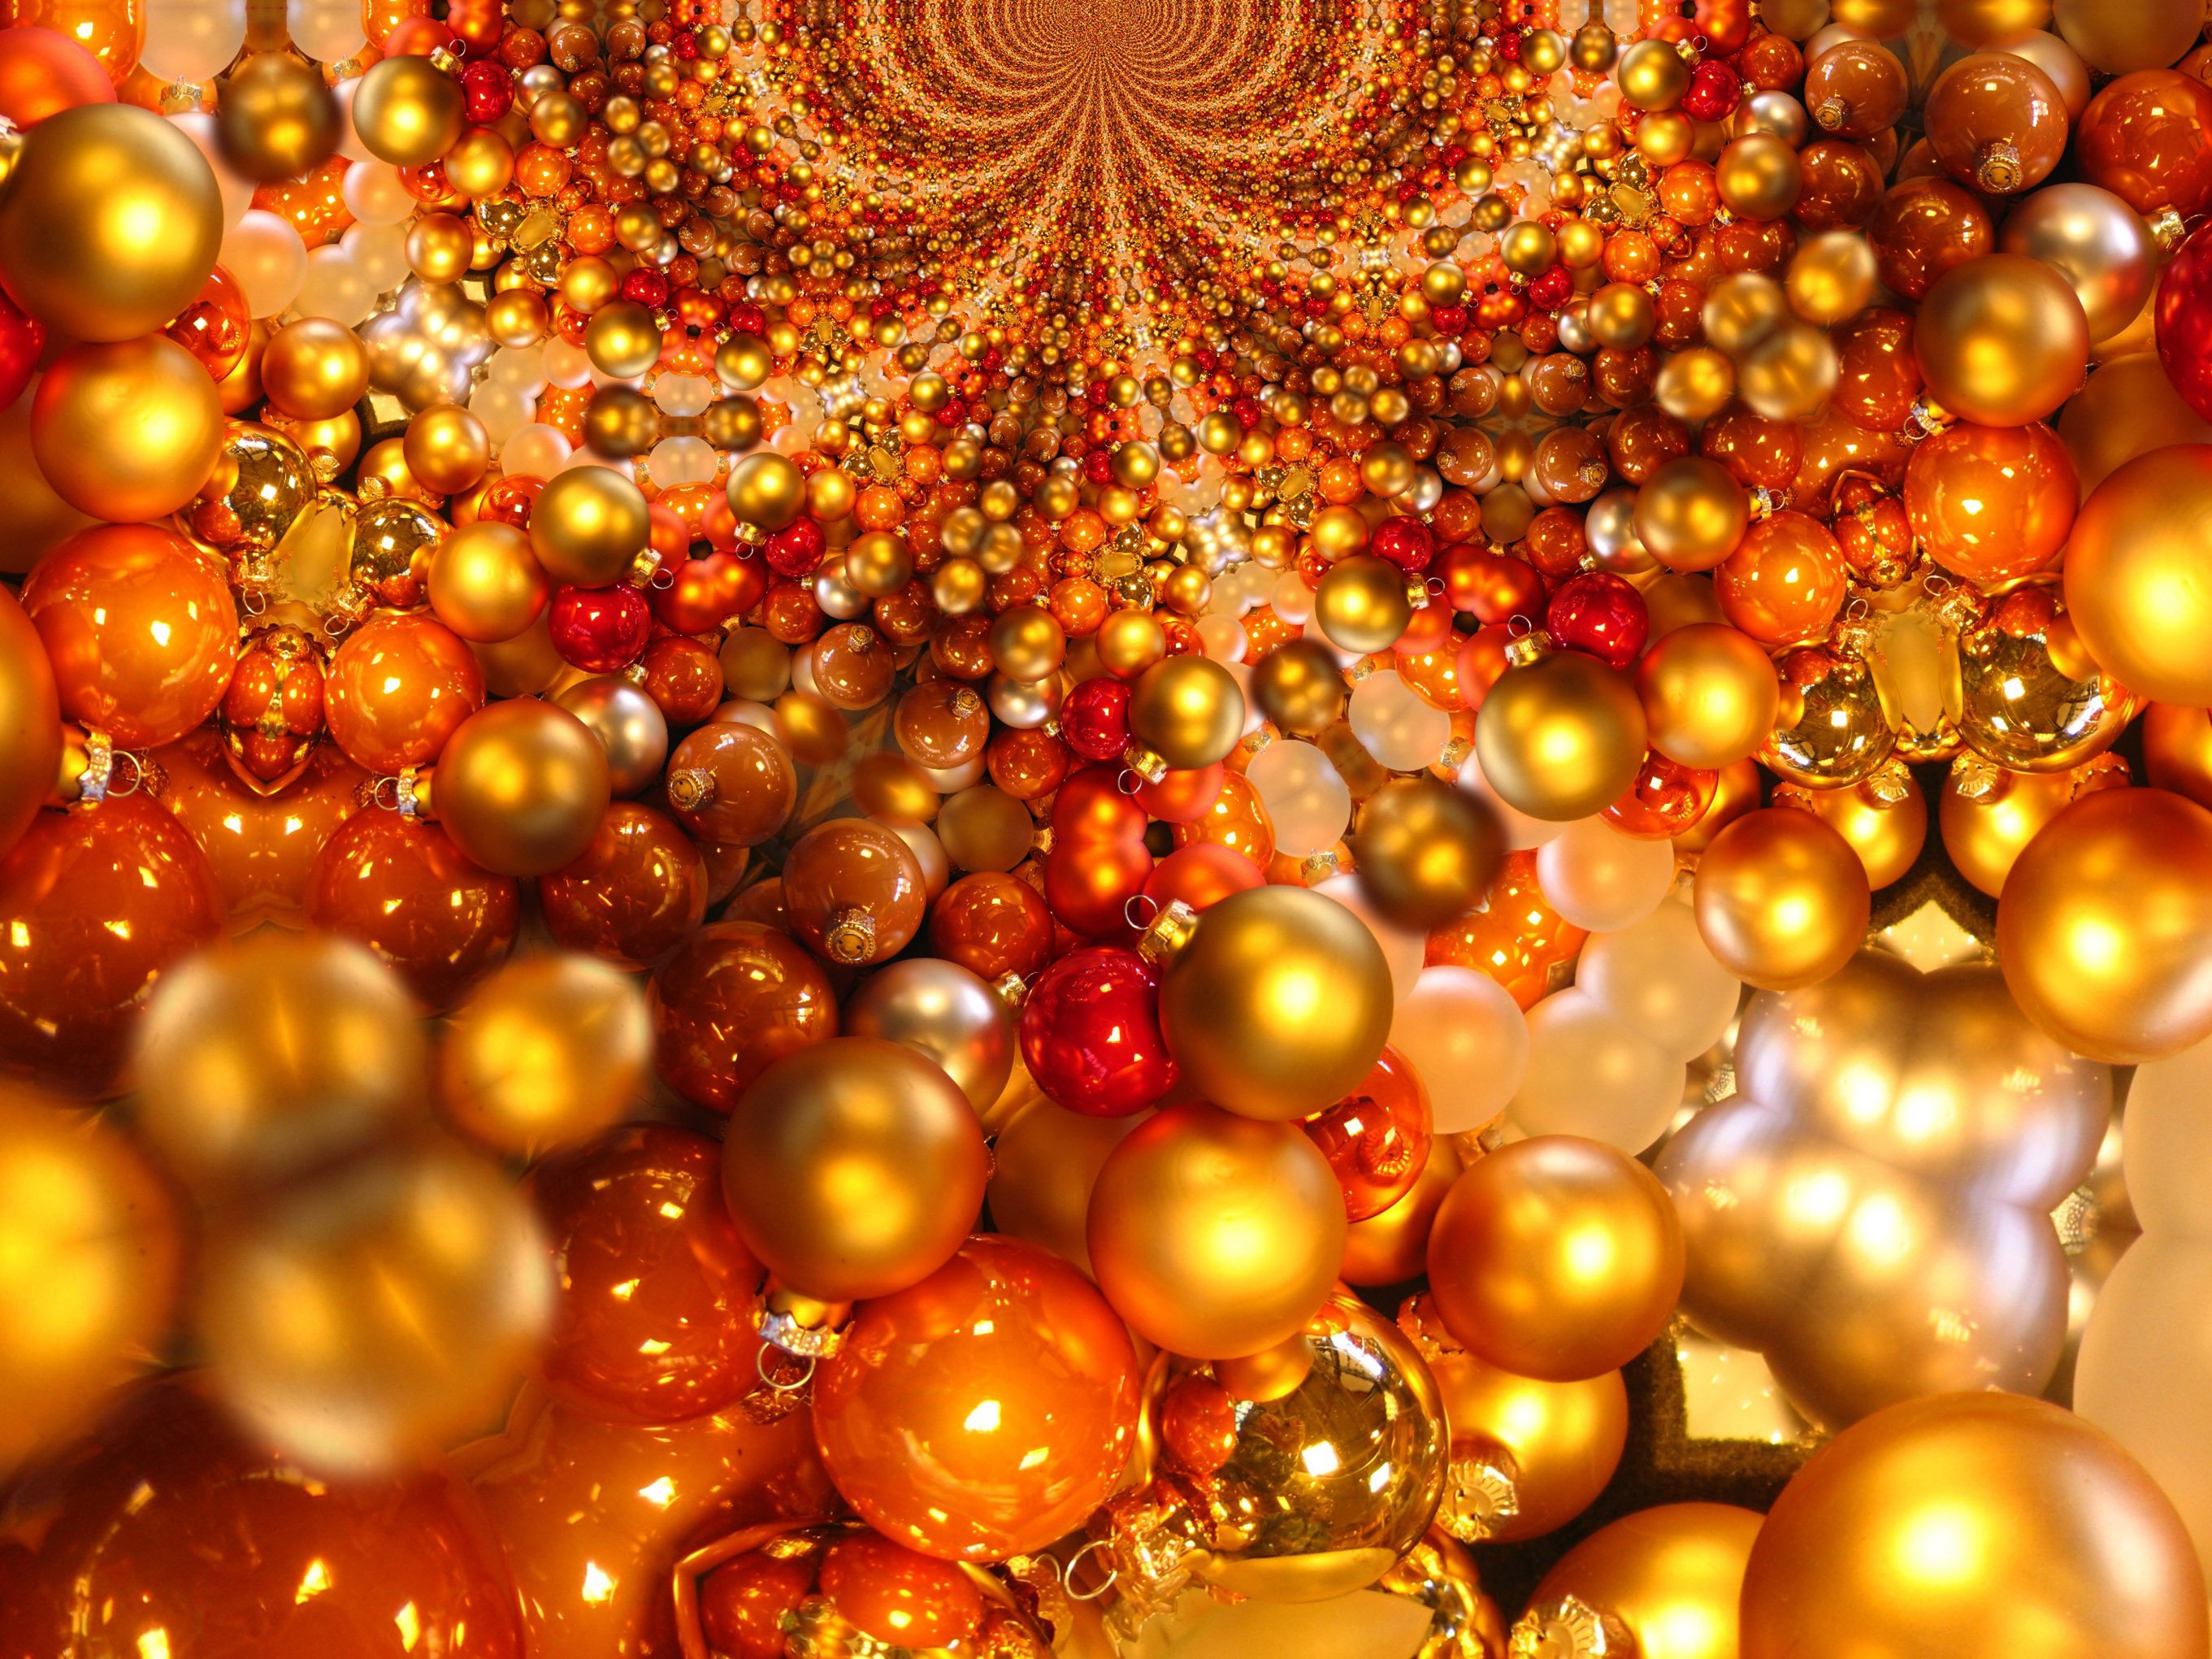 20 Great Ball or Bauble Themed Christmas Wallpaper or 2722x2041